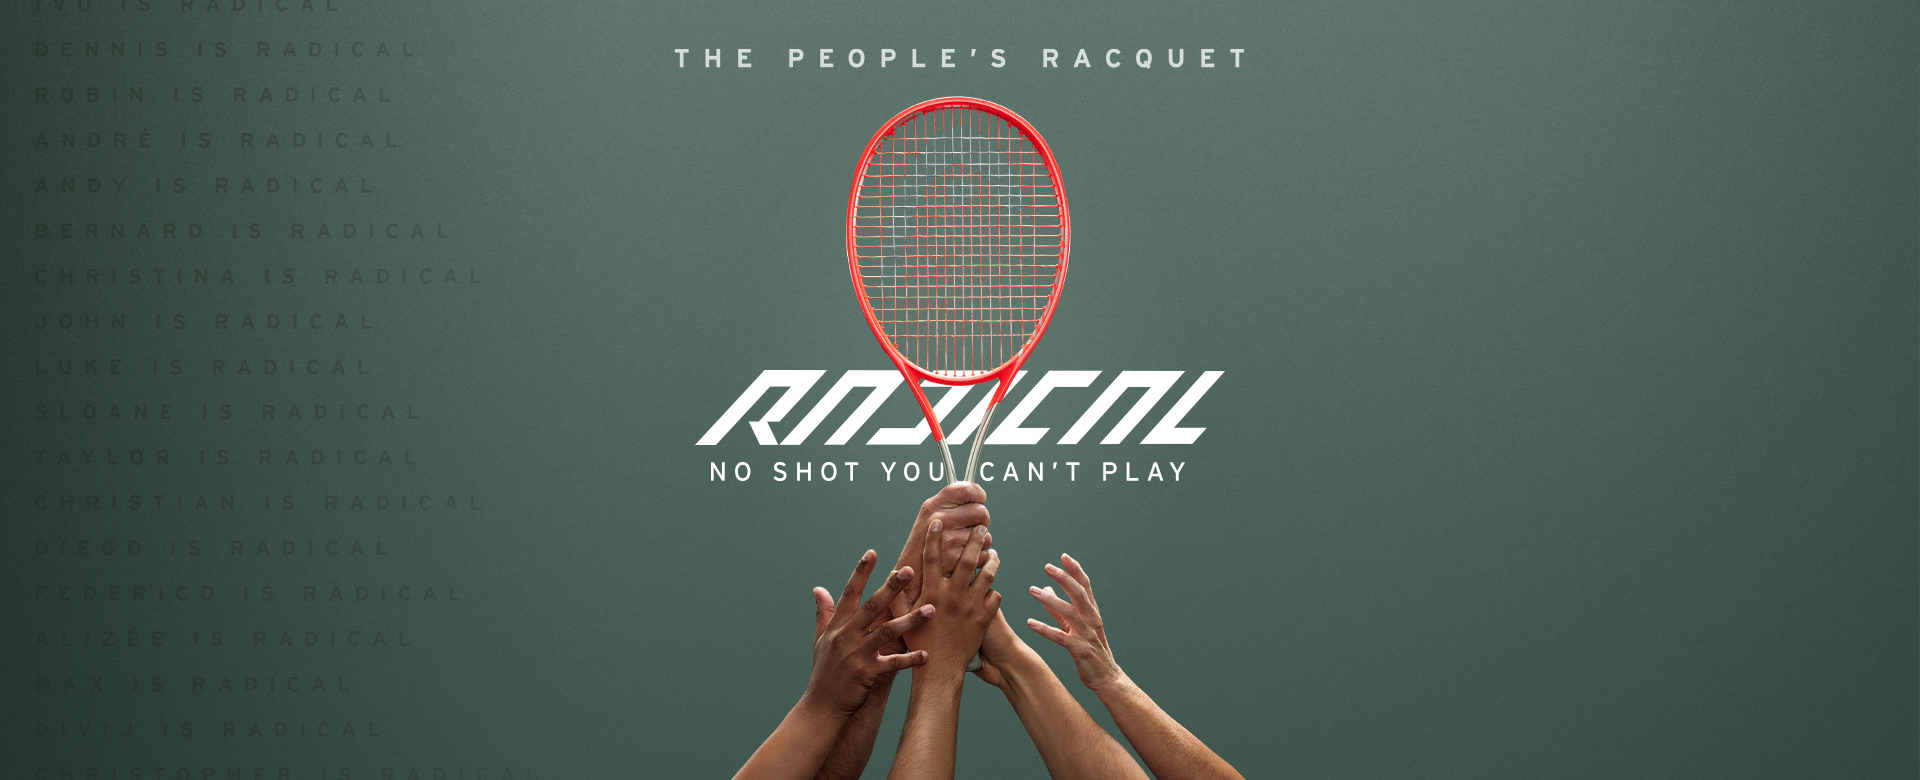 The New Head Radical – No shot you can't play